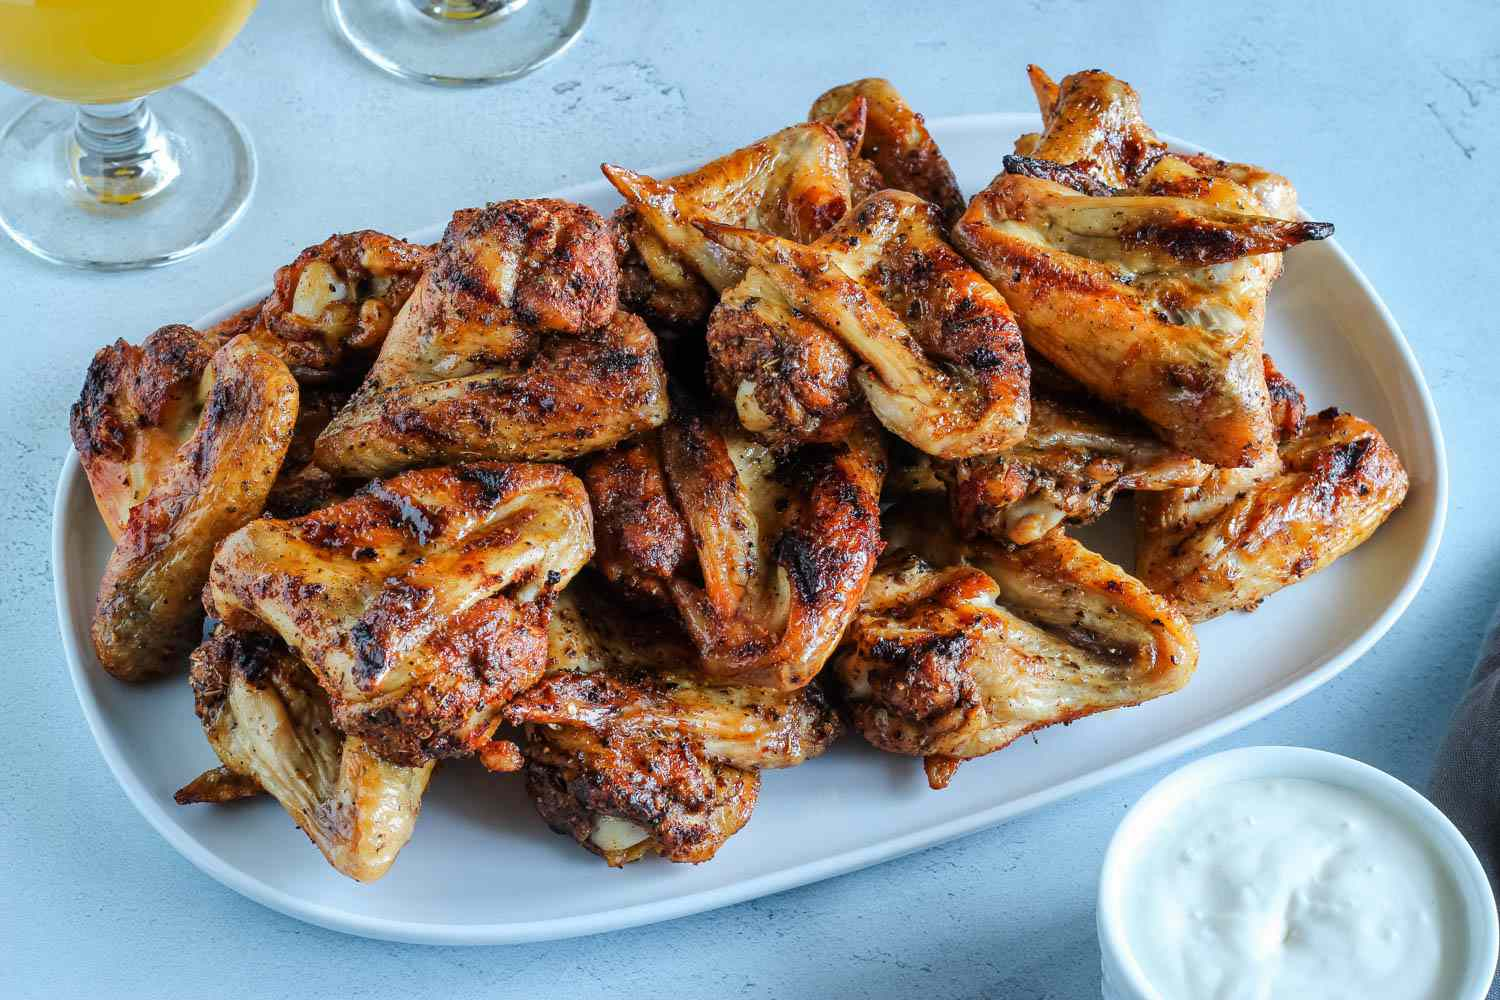 Spicy grilled chicken wings recipe